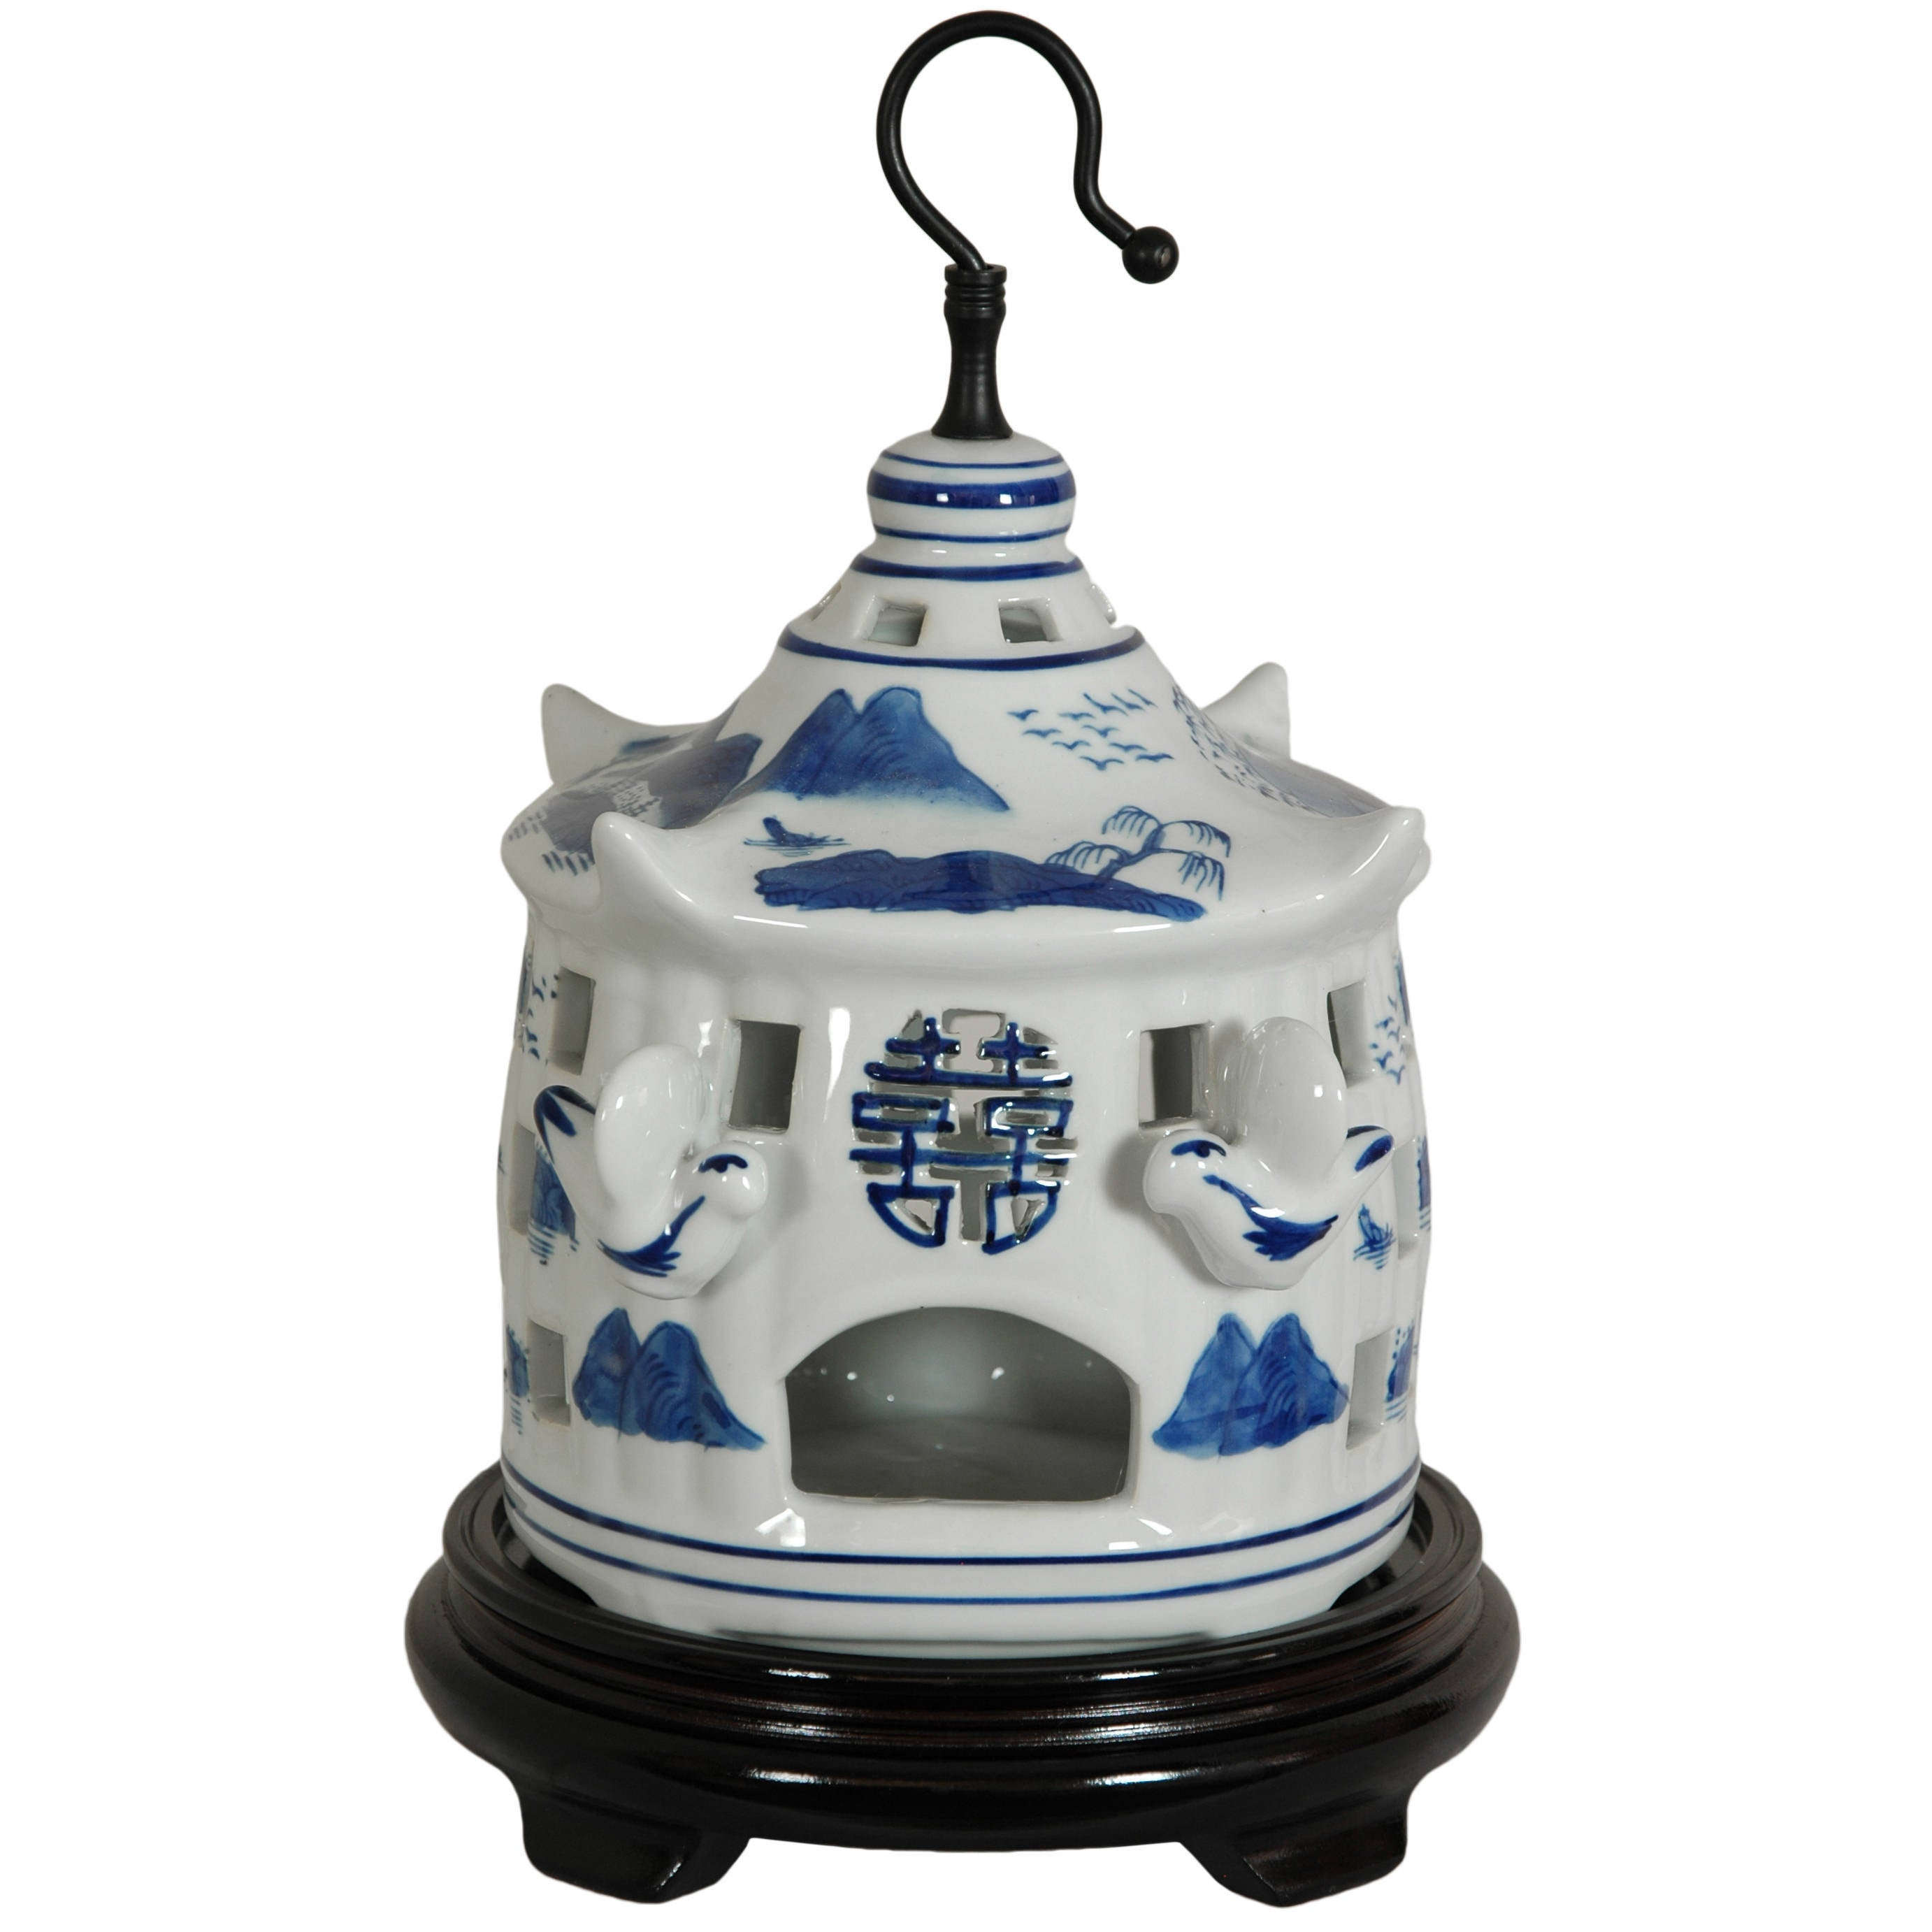 Oriental FURNITURE Handmade Porcelain 11-inch Blue and Wh...